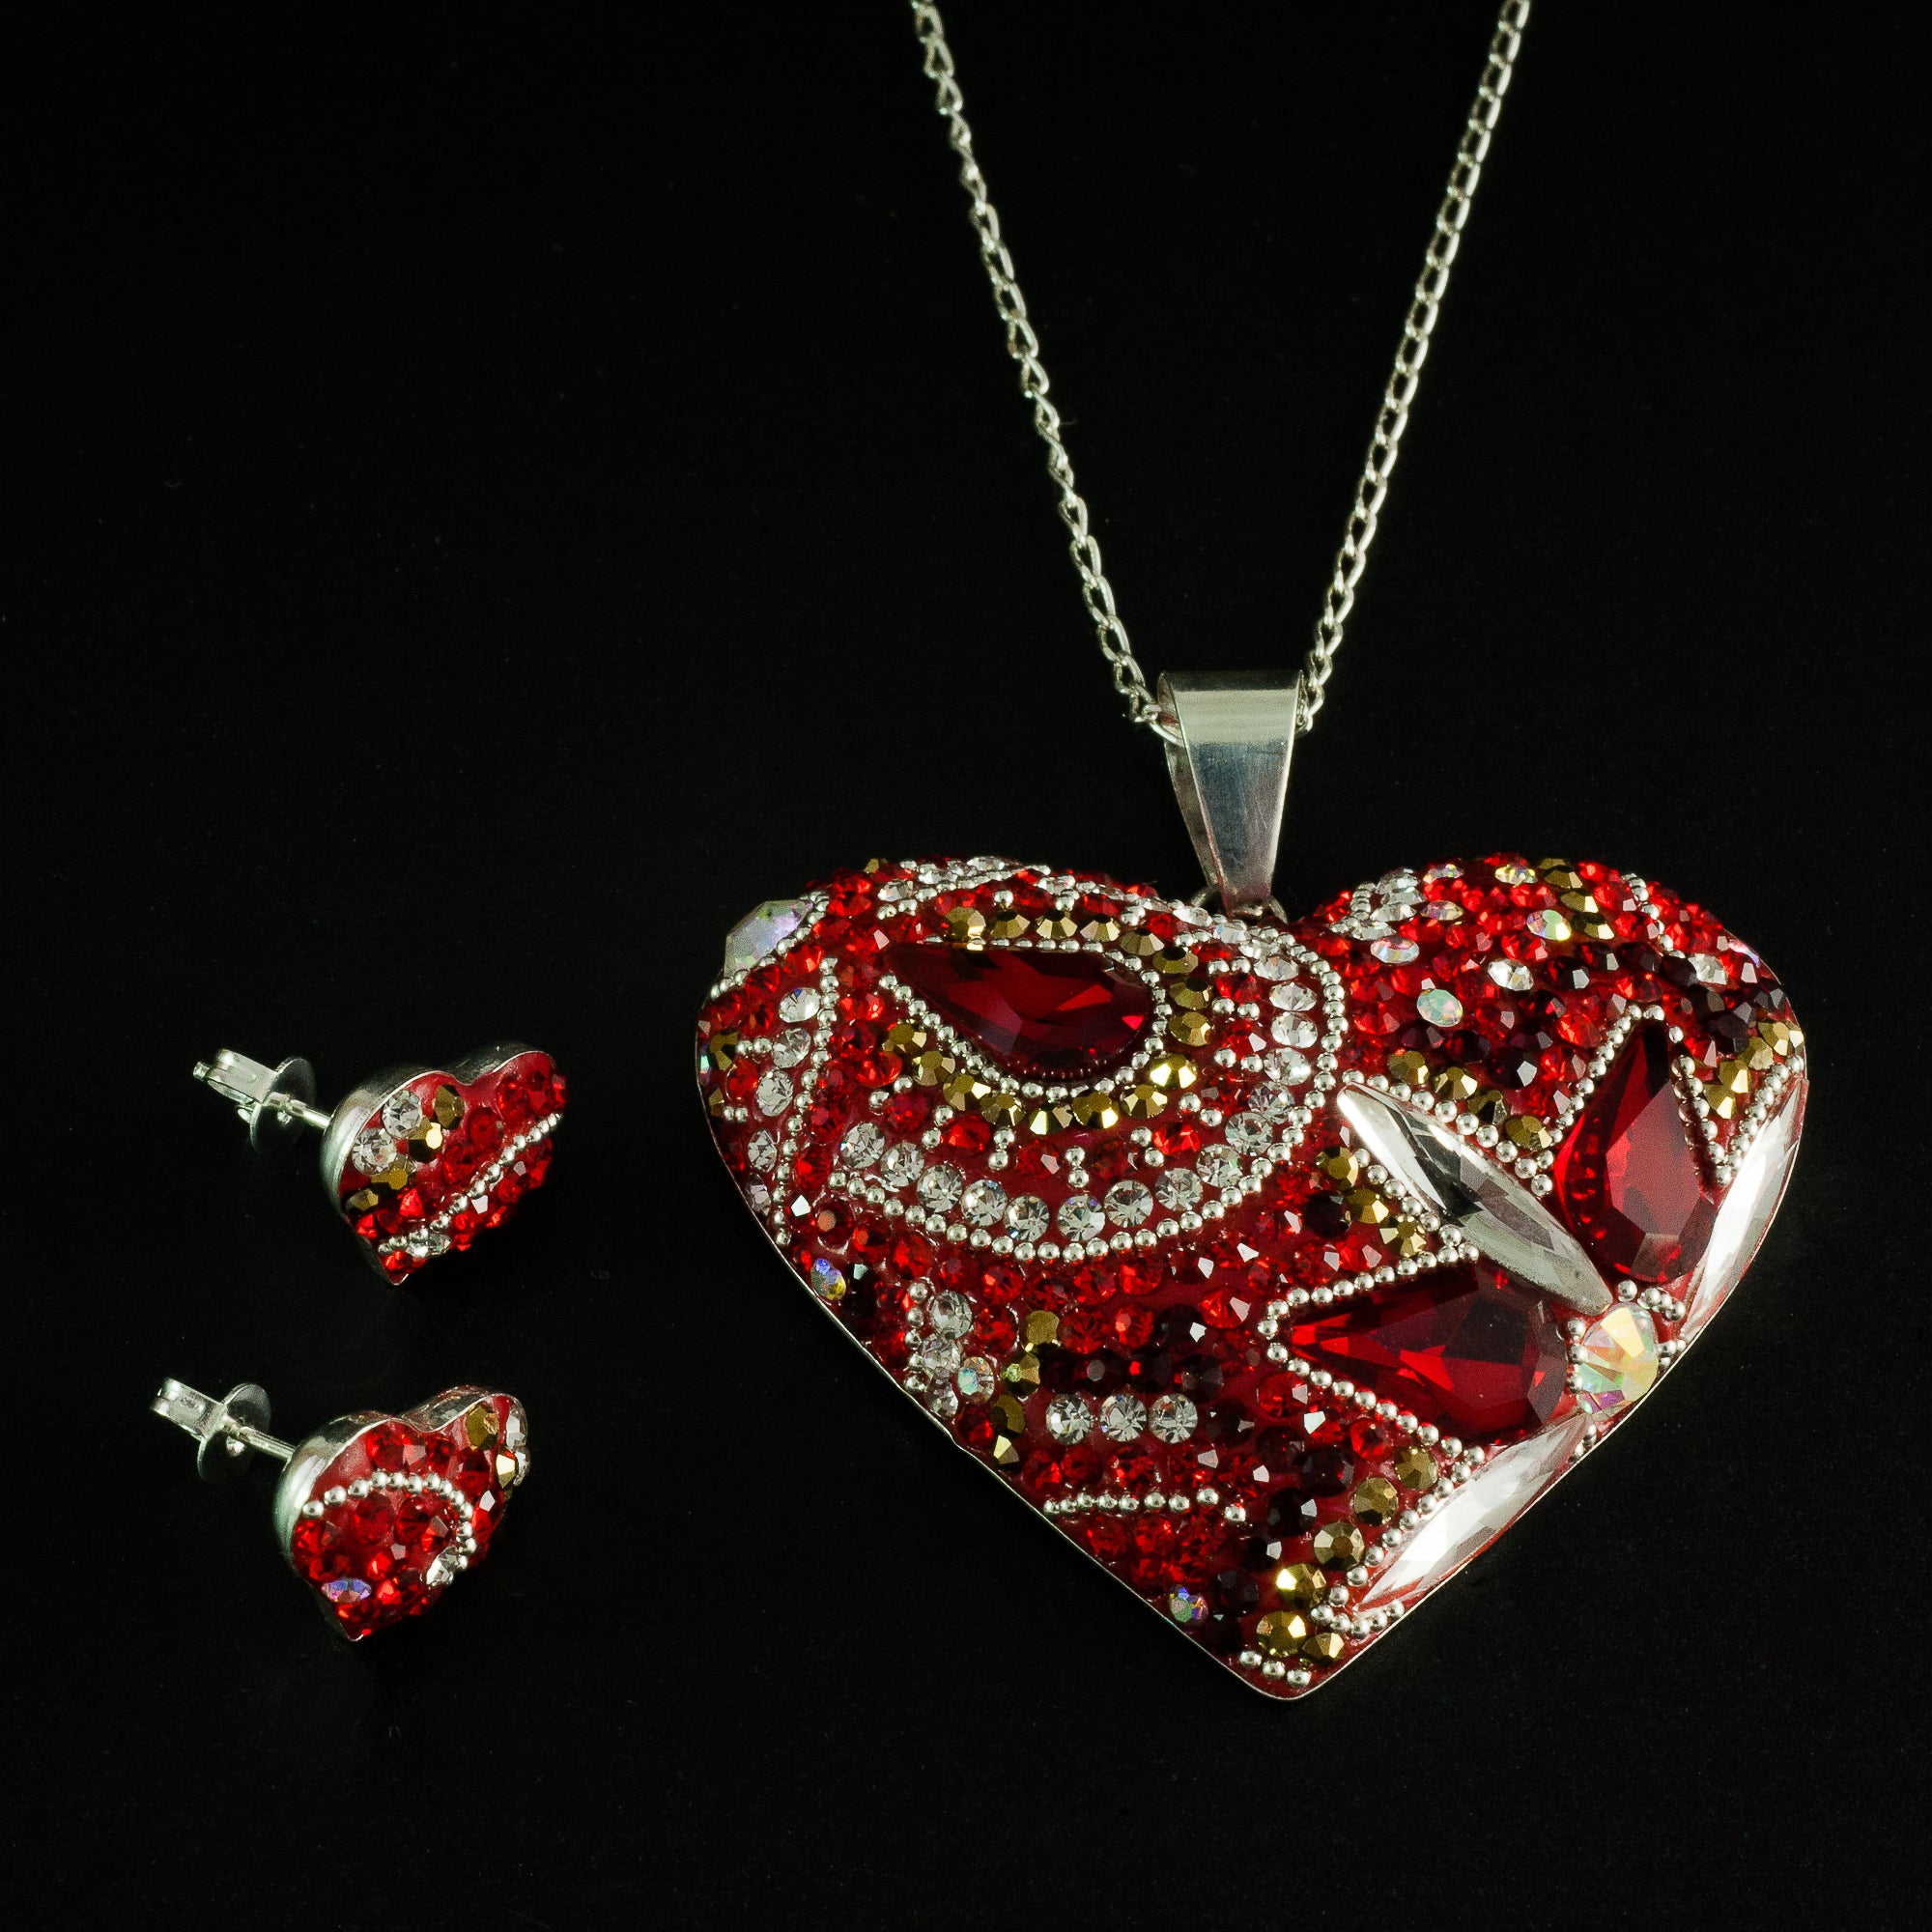 ghost lyst in pendant jewelry gucci gallery red egg necklace silver sterling heart